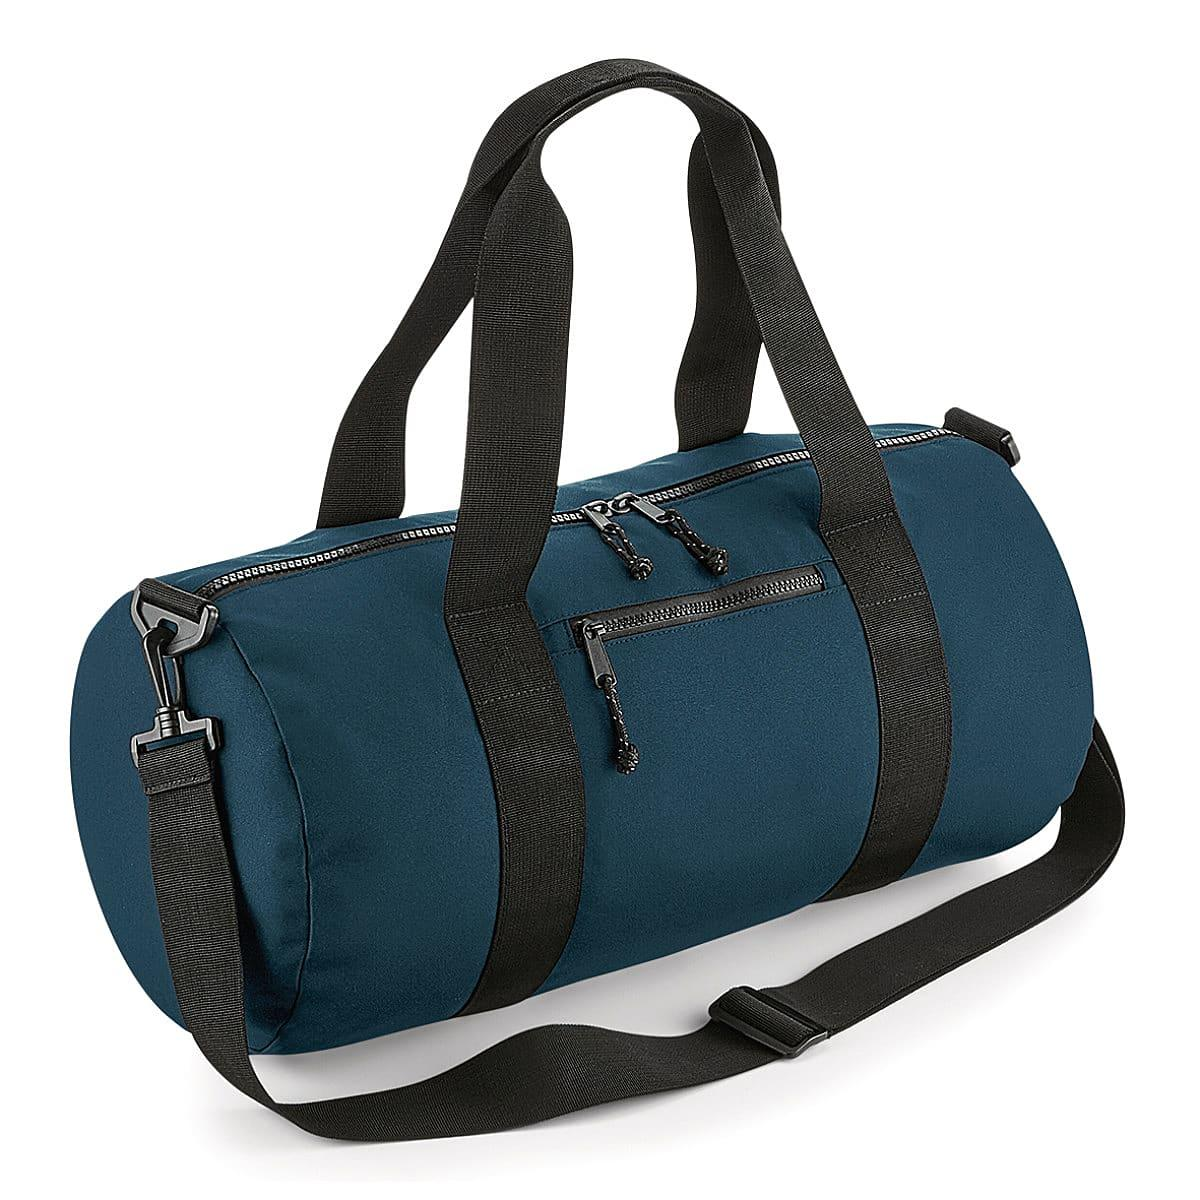 Bagbase Recycled Barrel Bag in Petrol (Product Code: BG284)